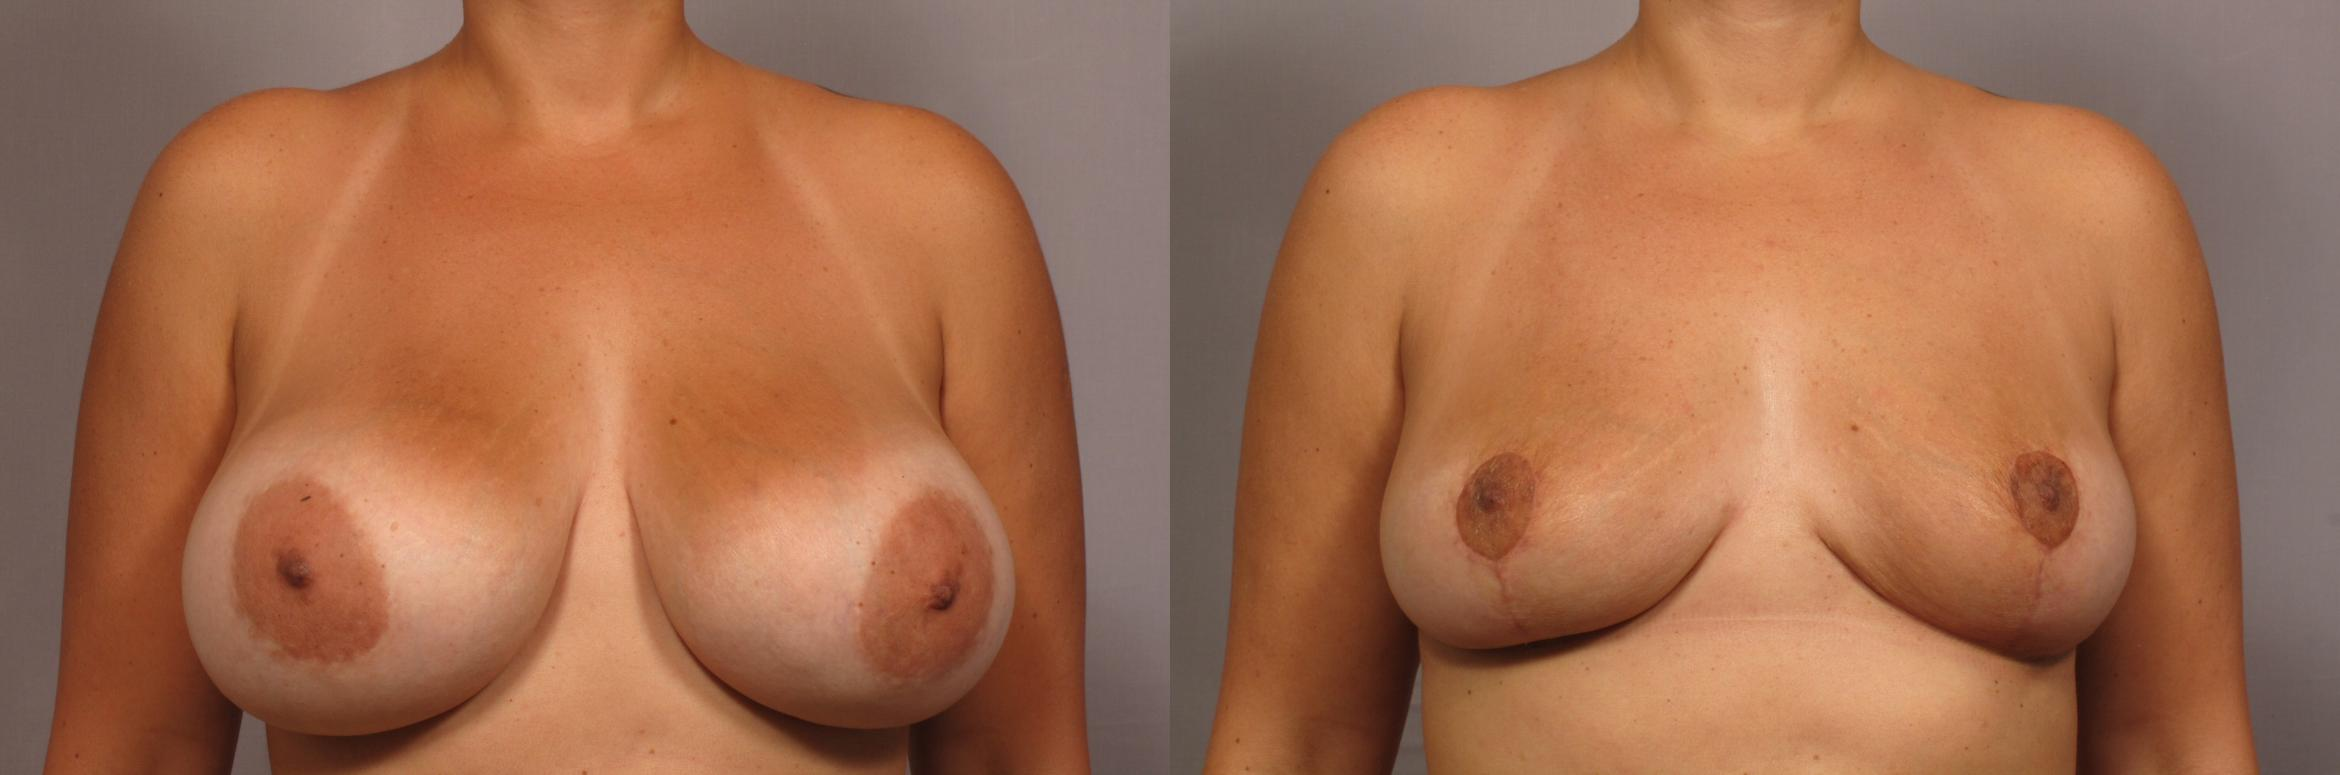 Breast Implant Removal Case 359 Before & After View #1 | Naples, FL | Kent V. Hasen, M.D.